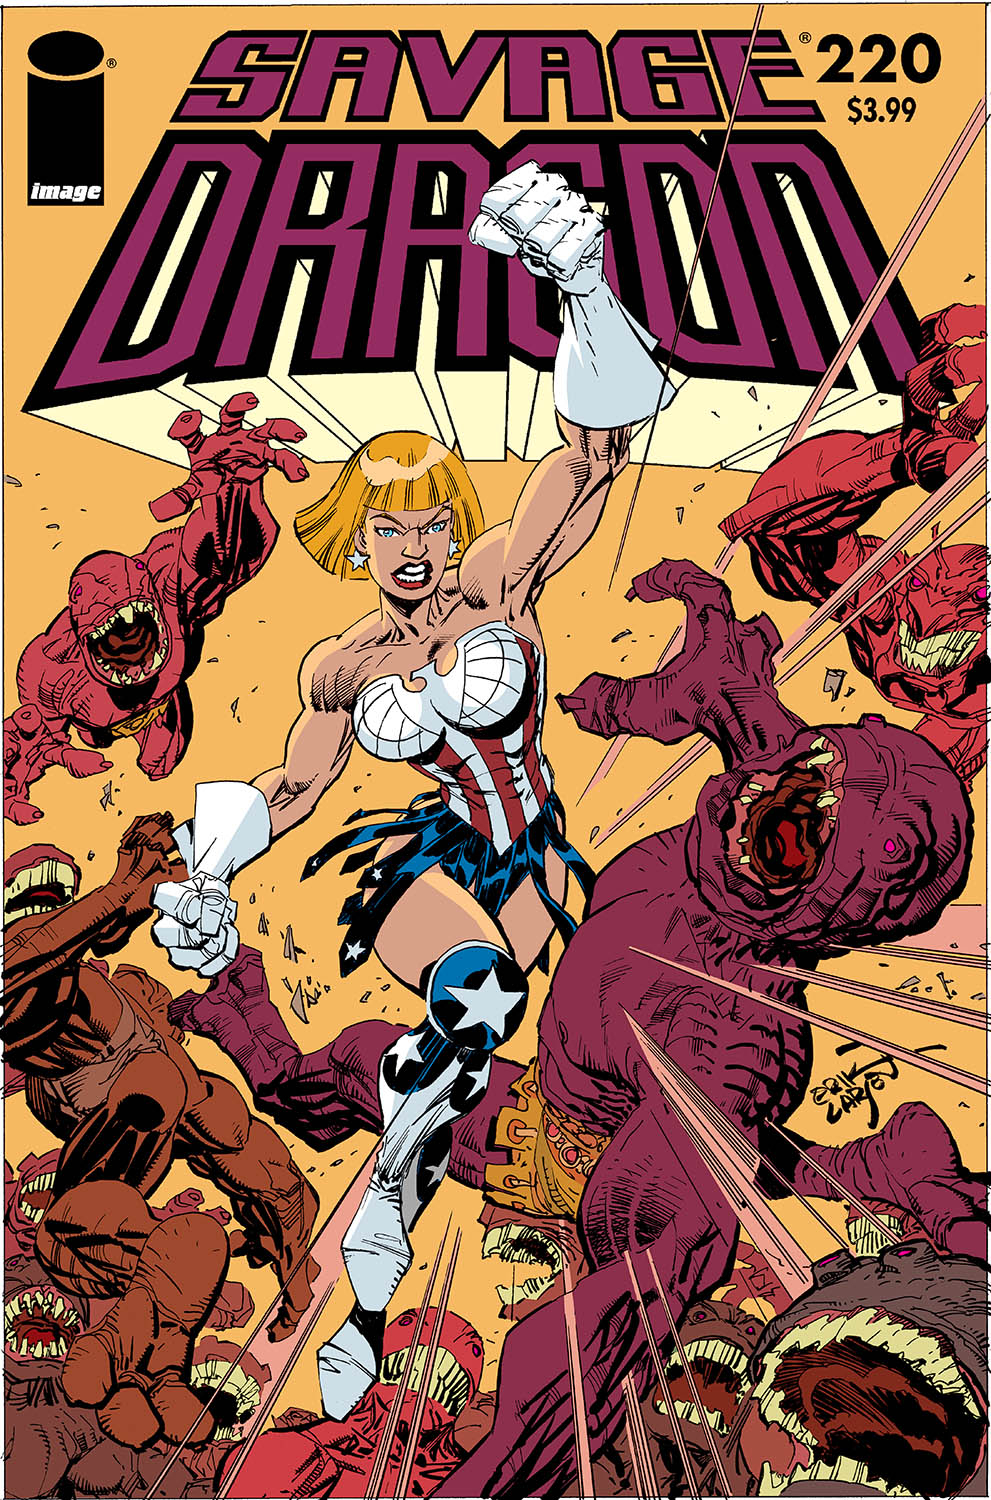 SAVAGE DRAGON #220 (MR)